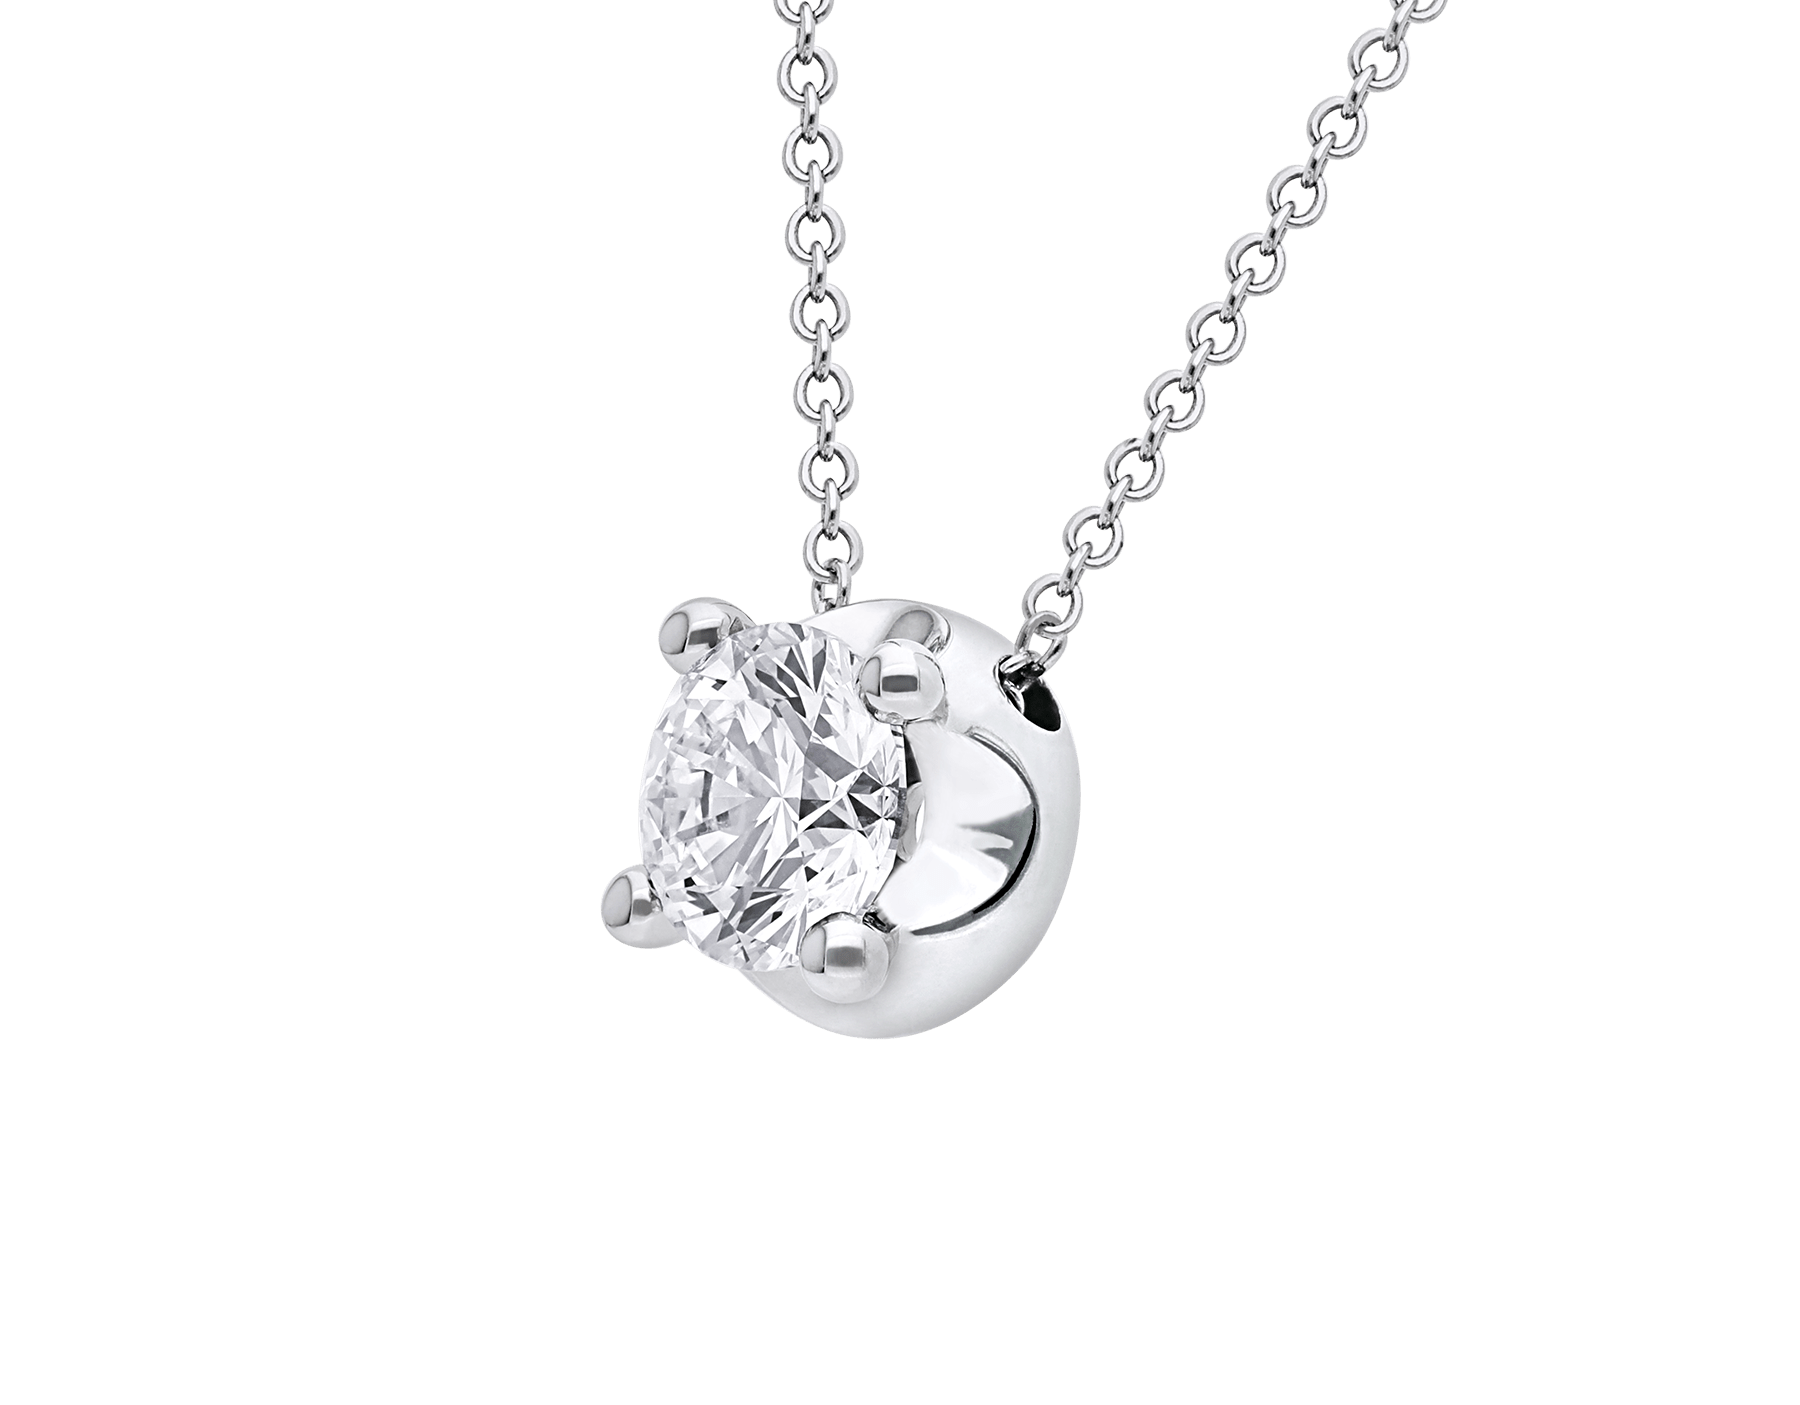 Corona necklace with 18 kt white gold chain and 18 kt white gold pendant set with a round brilliant cut diamond CL-CORONA image 3